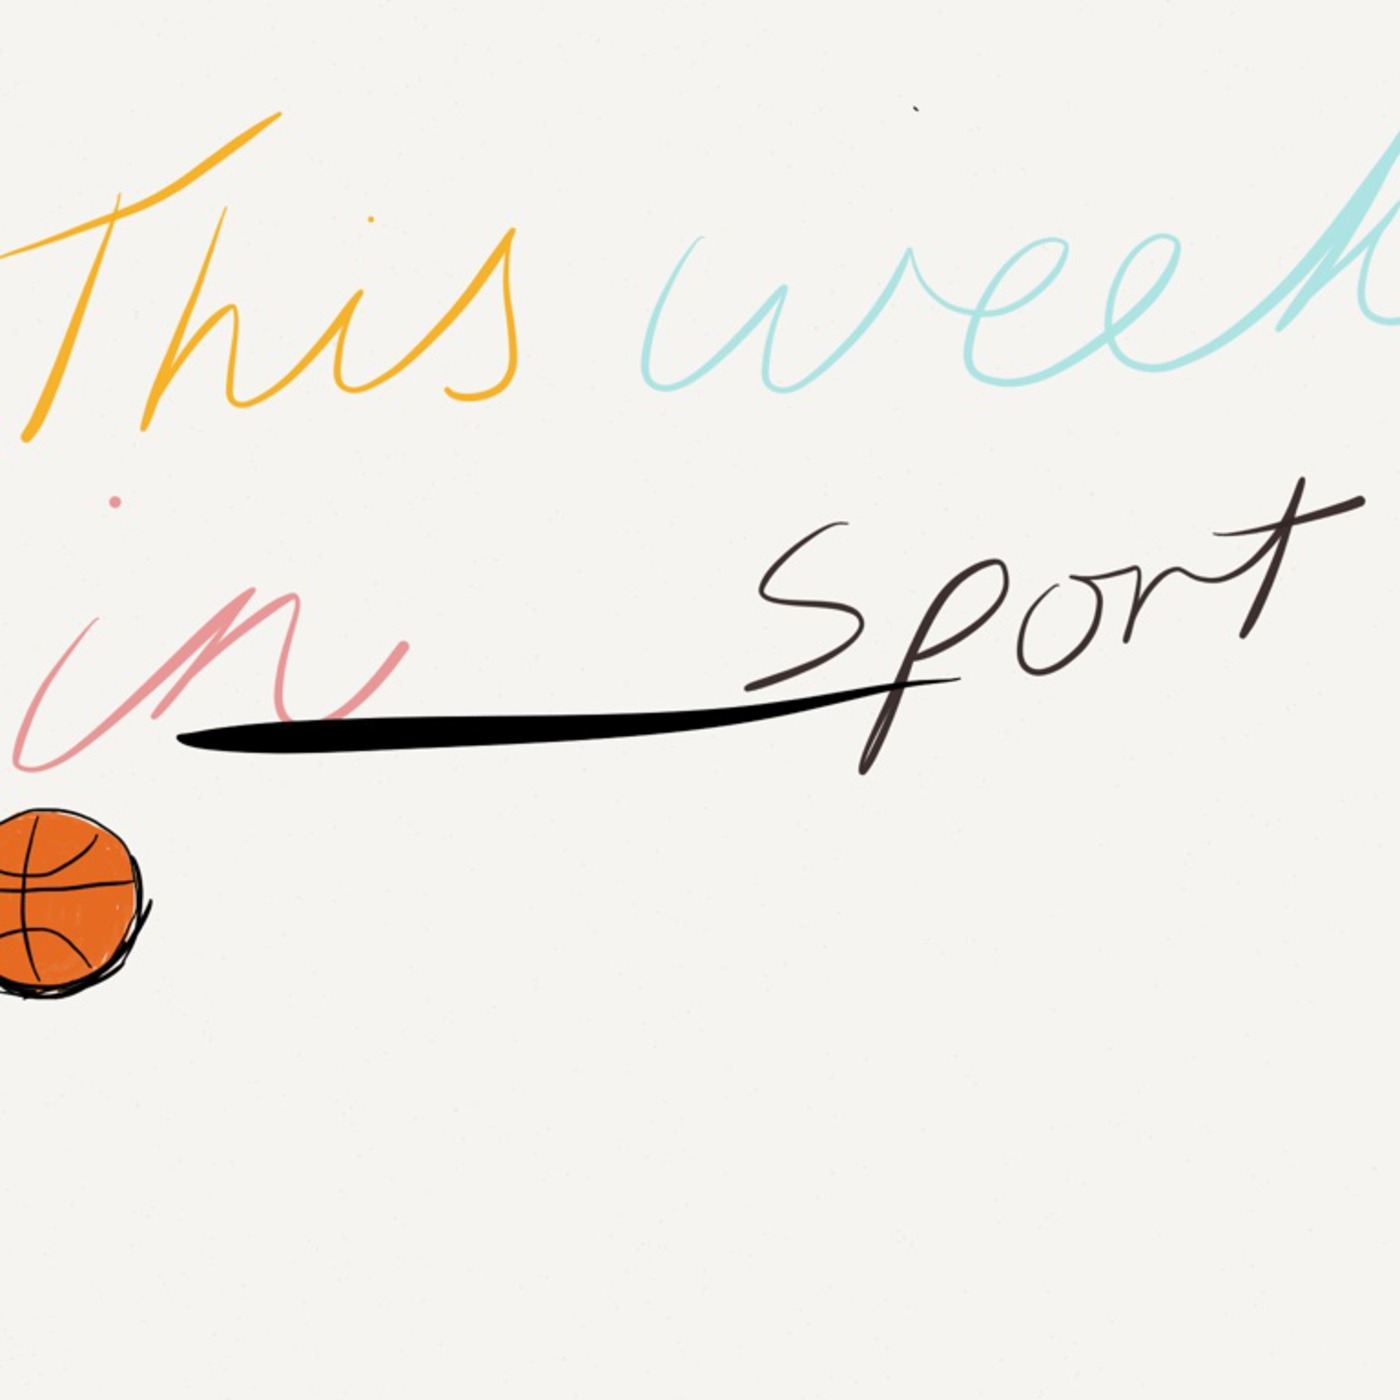 This Week In Sport